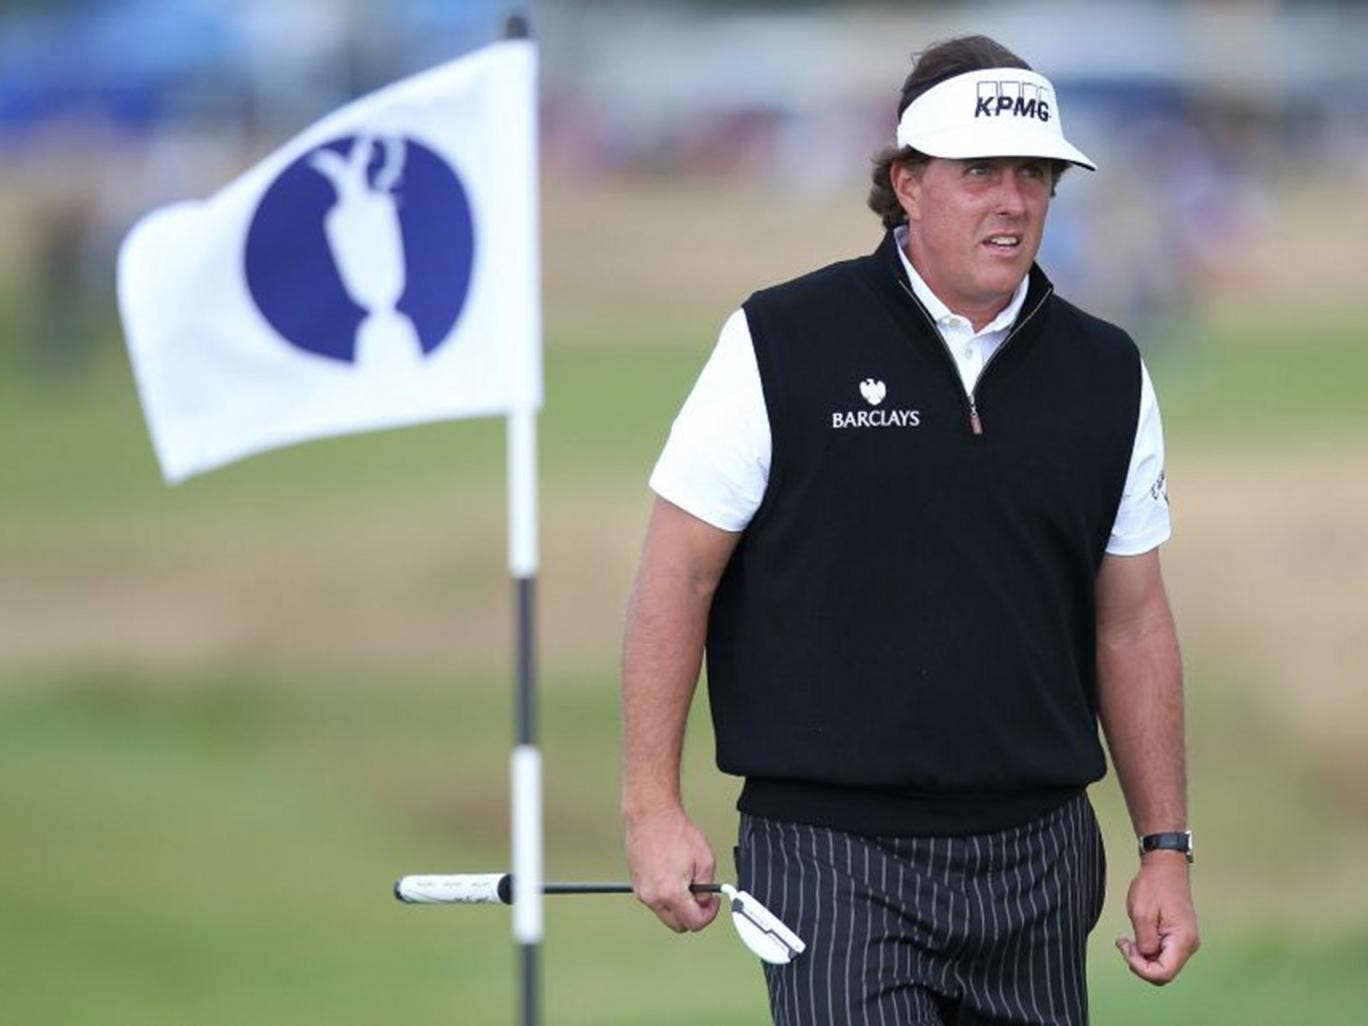 Defending Open champion Phil Mickelson has had a difficult year since his win at Muirfield